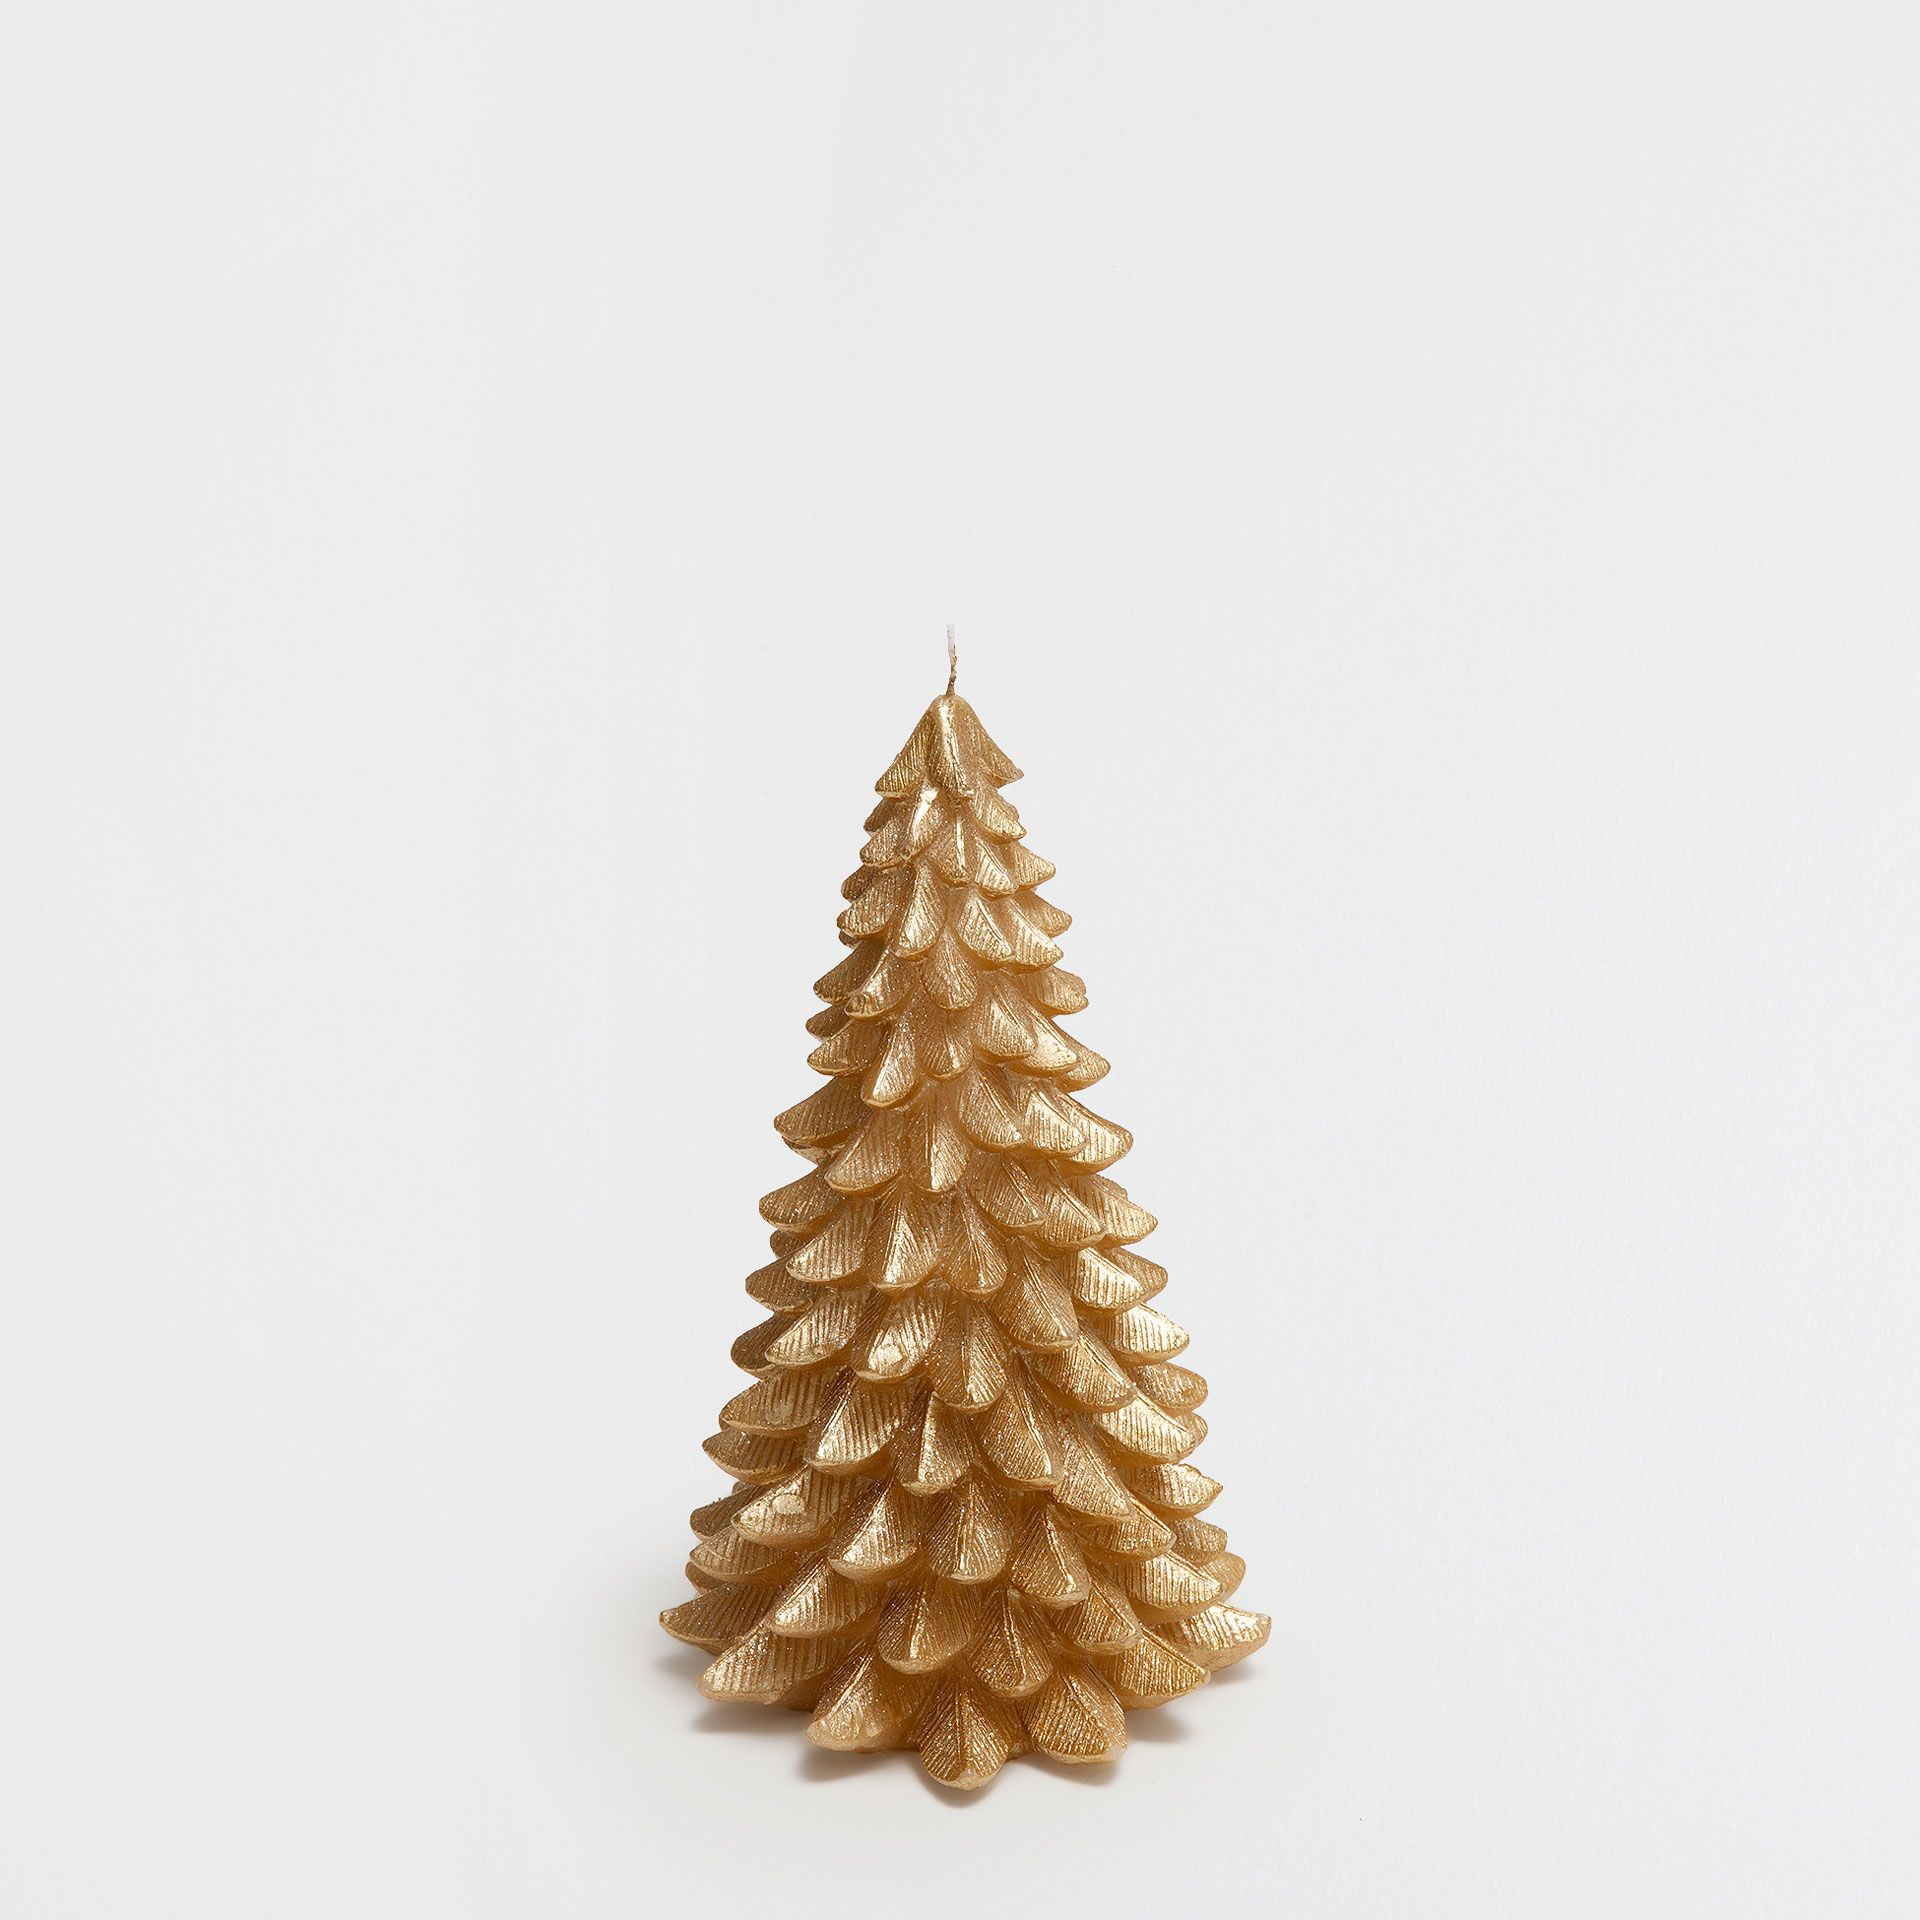 Large Fir Tree Shaped Golden Candle Collection Christmas Zara Home Canada Tree Shapes Fir Tree Candles